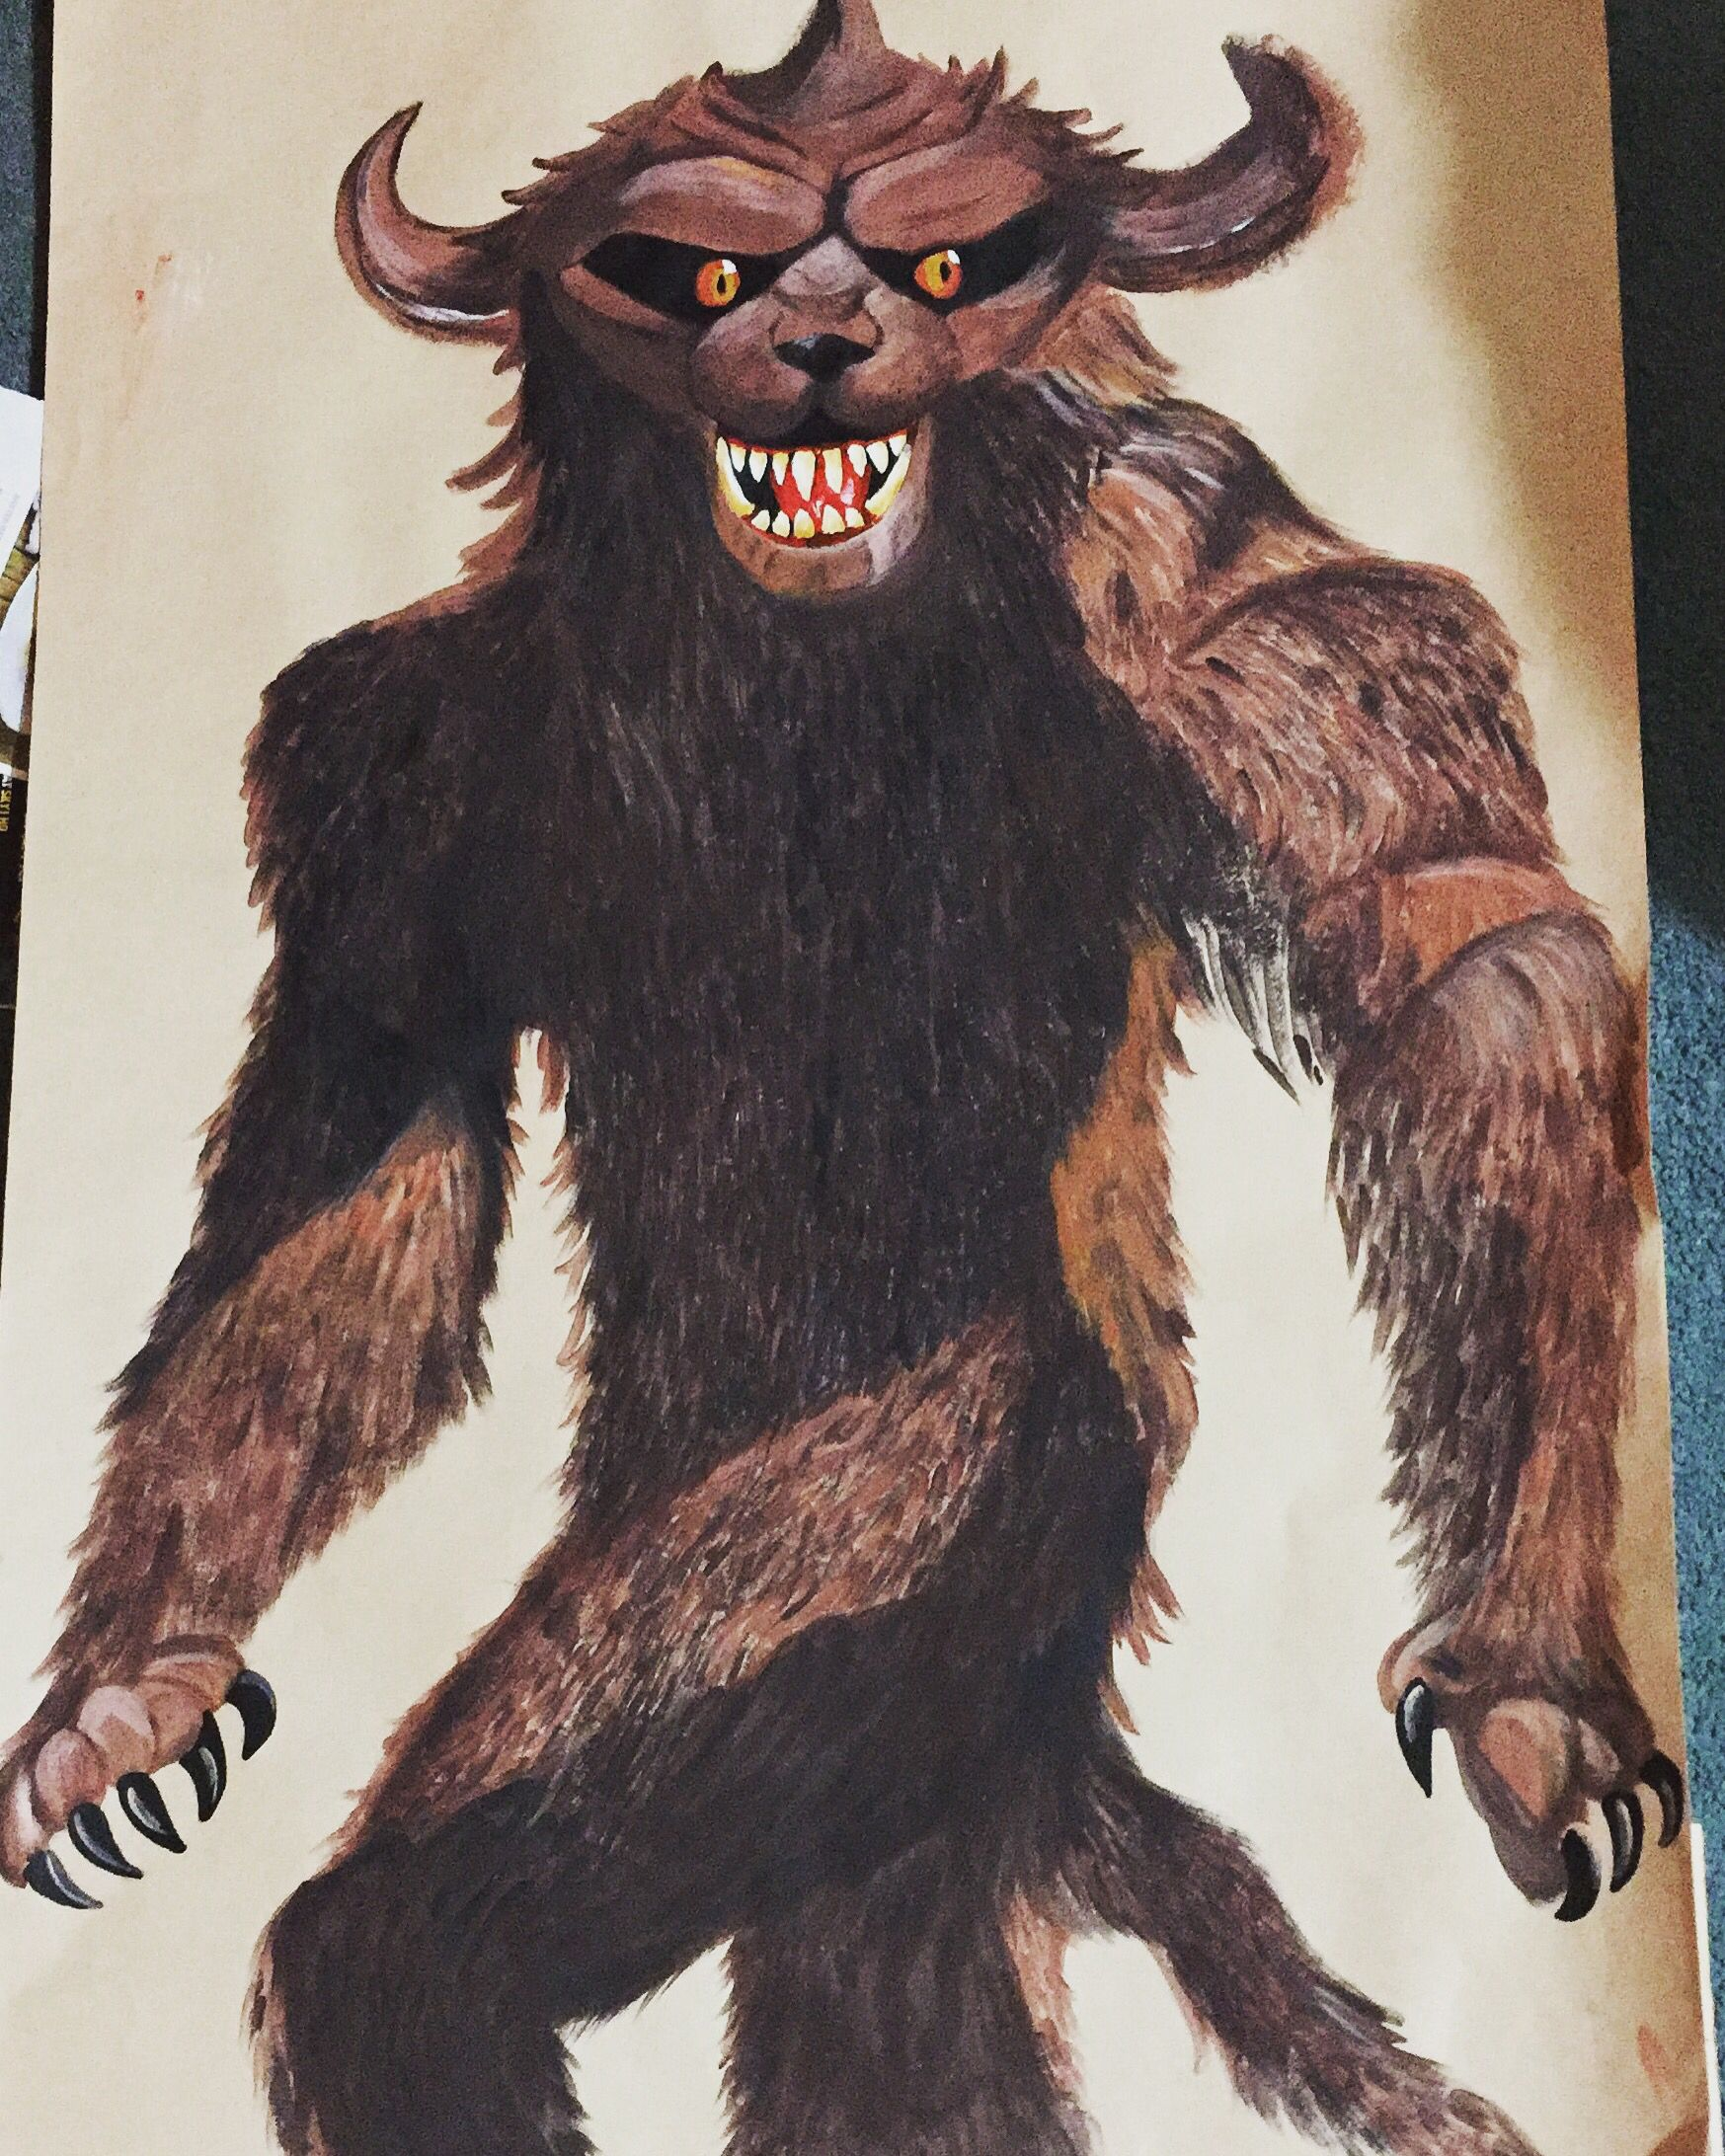 Grendel From Beowulf For Beowulf Primary School Display